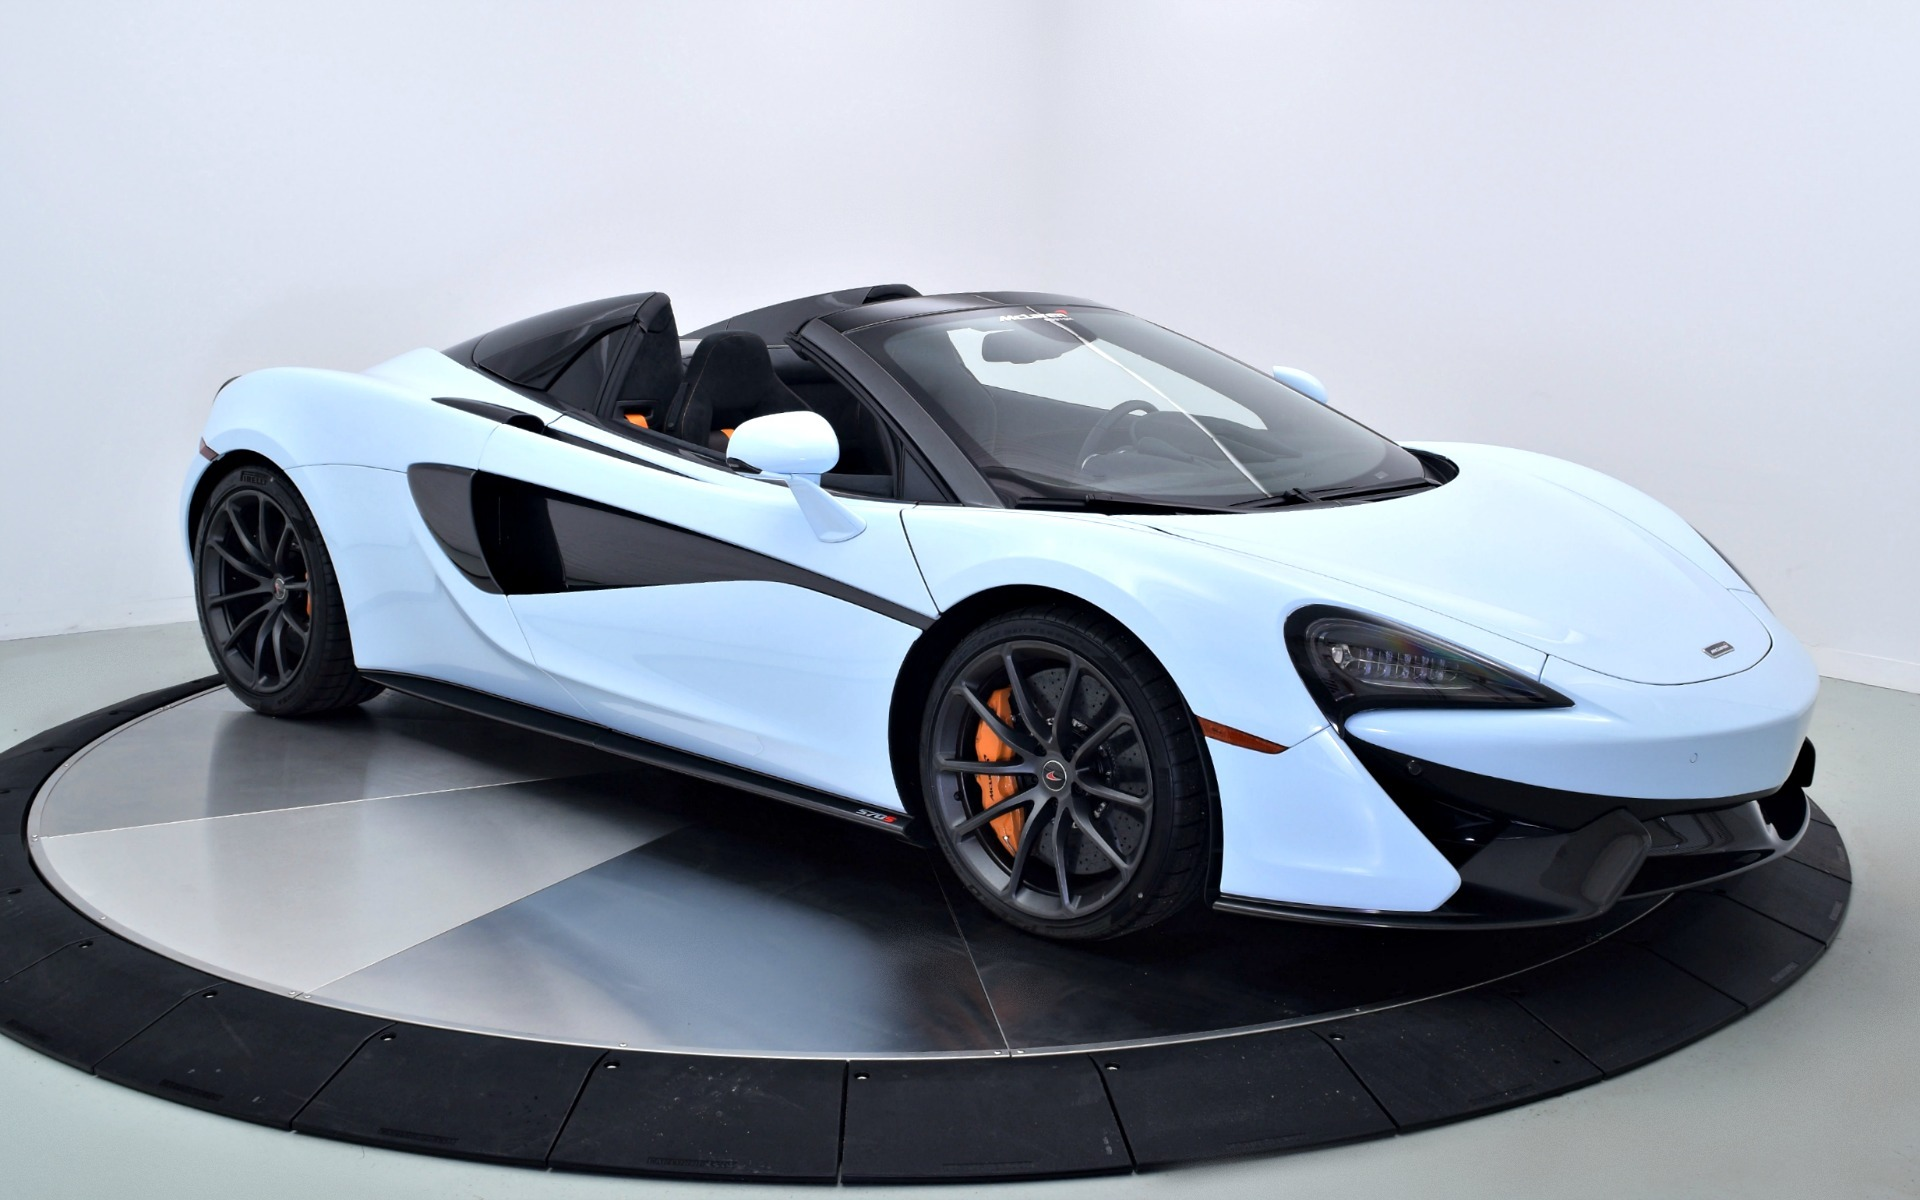 2018 mclaren 570s spider for sale in norwell ma 004002 mclaren boston. Black Bedroom Furniture Sets. Home Design Ideas